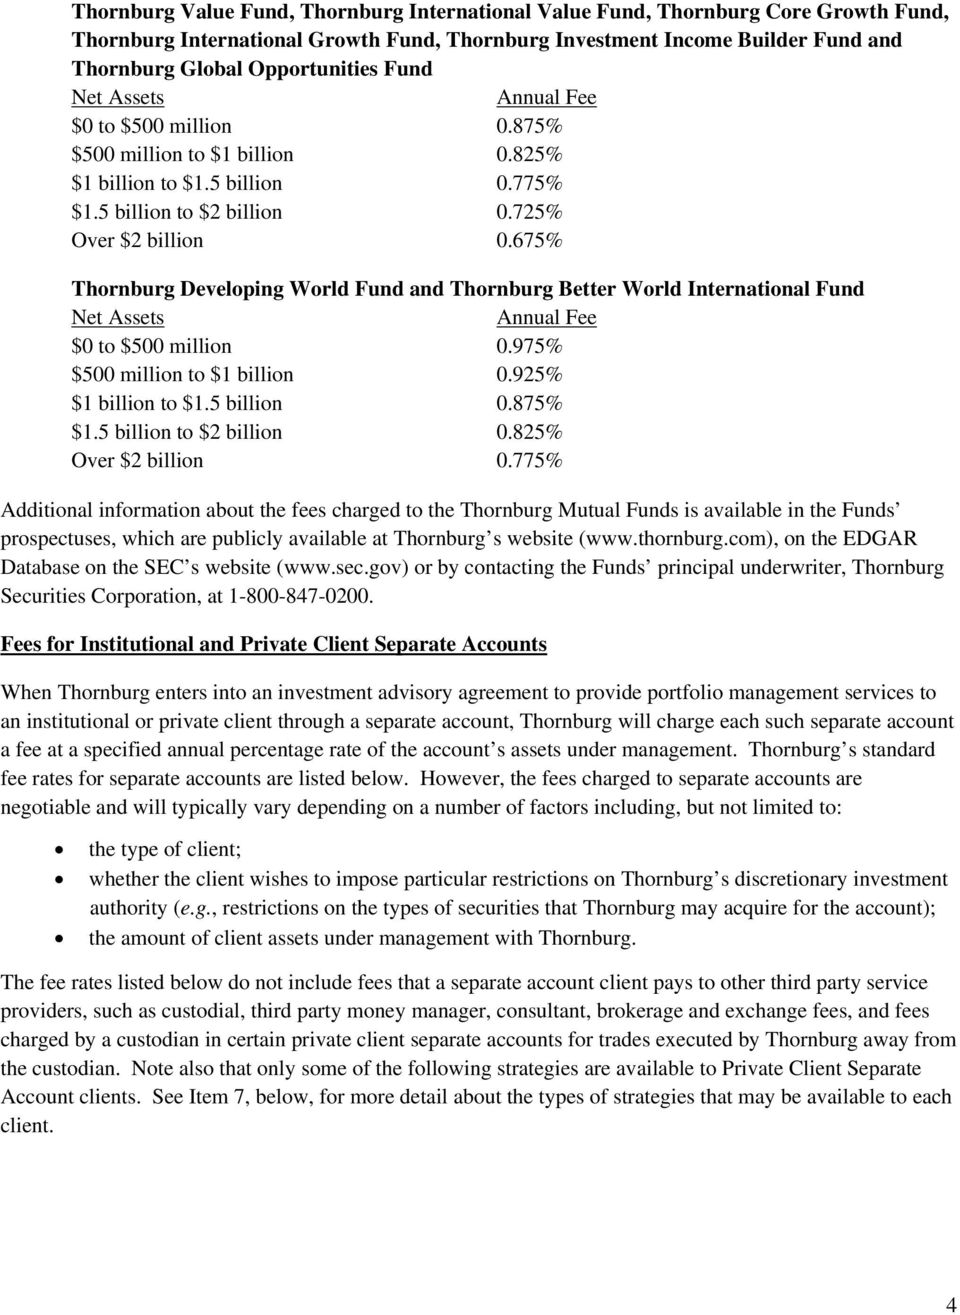 675% Thornburg Developing World Fund and Thornburg Better World International Fund Net Assets Annual Fee $0 to $500 million 0.975% $500 million to $1 billion 0.925% $1 billion to $1.5 billion 0.